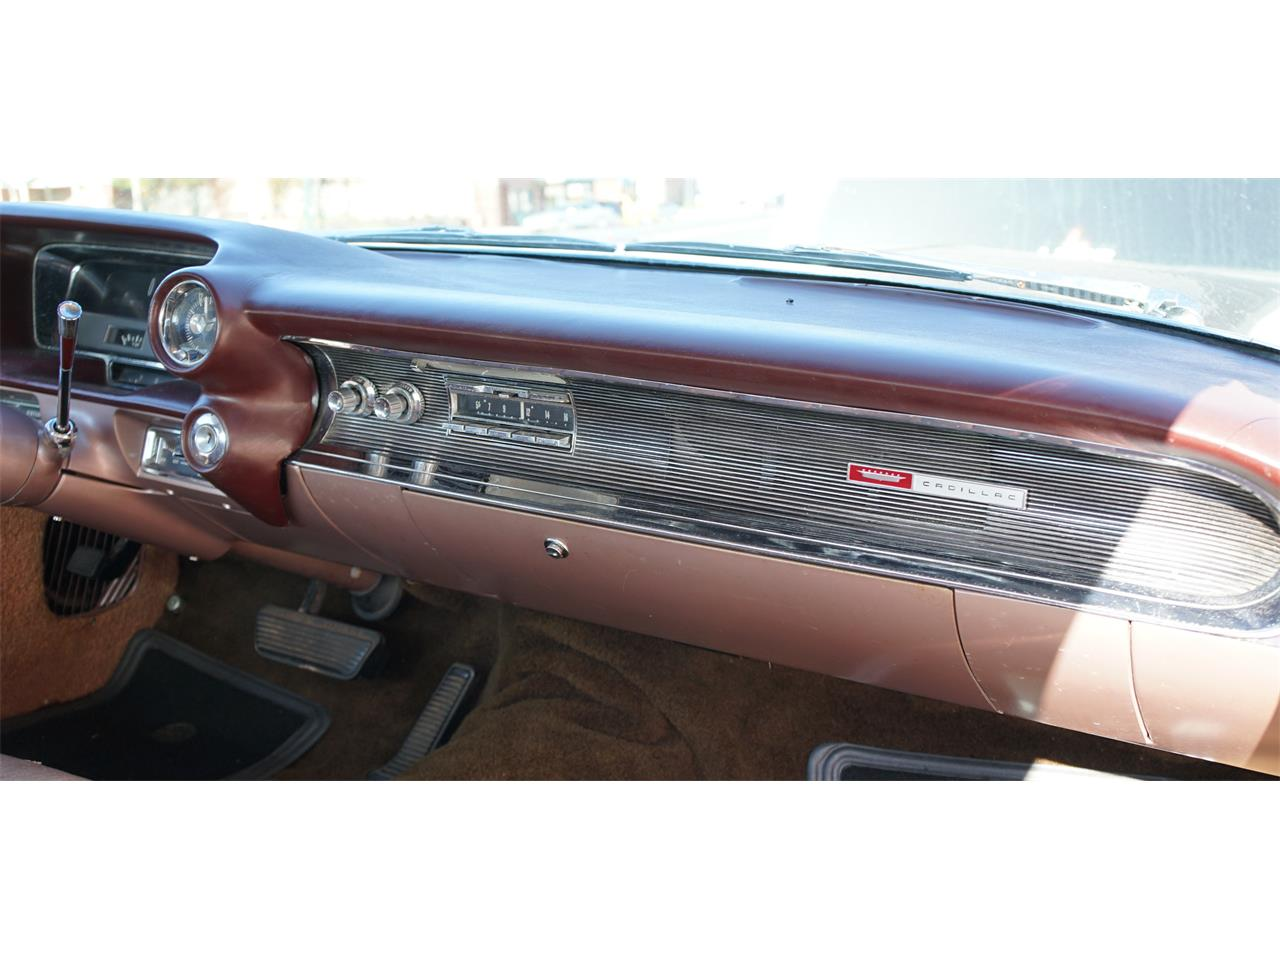 Large Picture of '60 Cadillac 2-Dr Coupe located in Washington - $8,000.00 - Q3YG